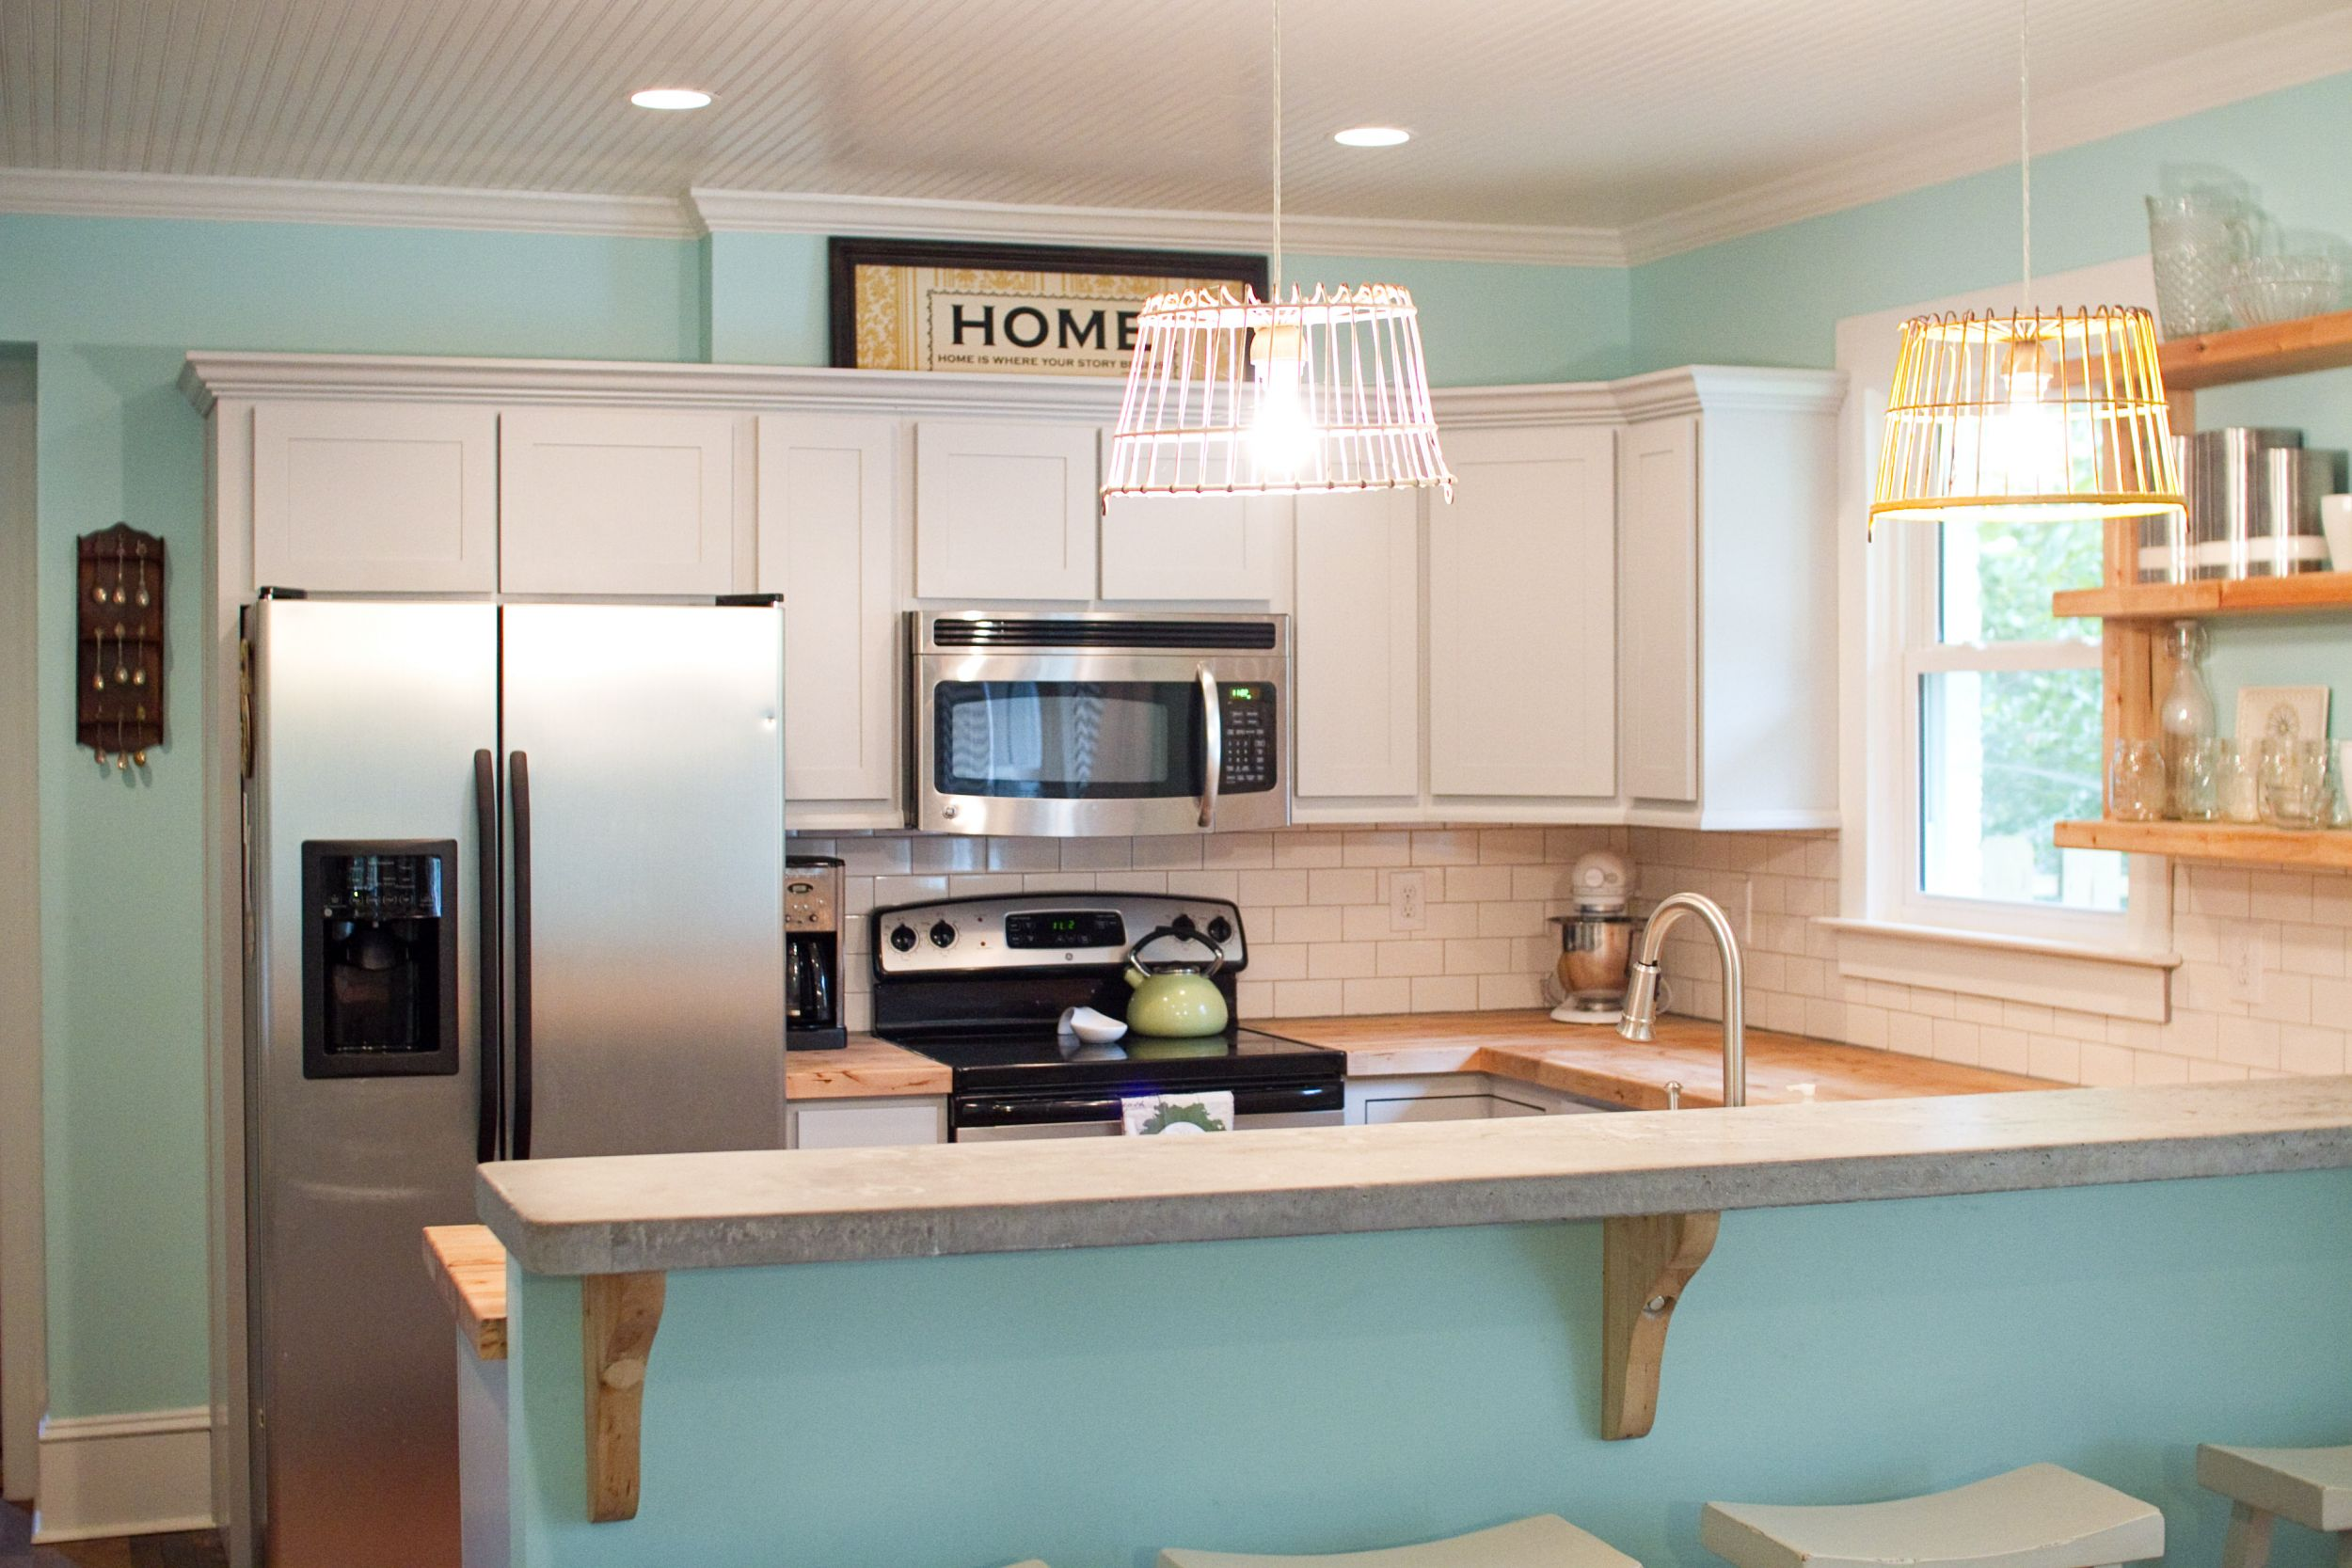 kitchen renovation ideas small kitchen remodel ideas diy kitchen cabinet ideas budget budget kitchen renovation progress